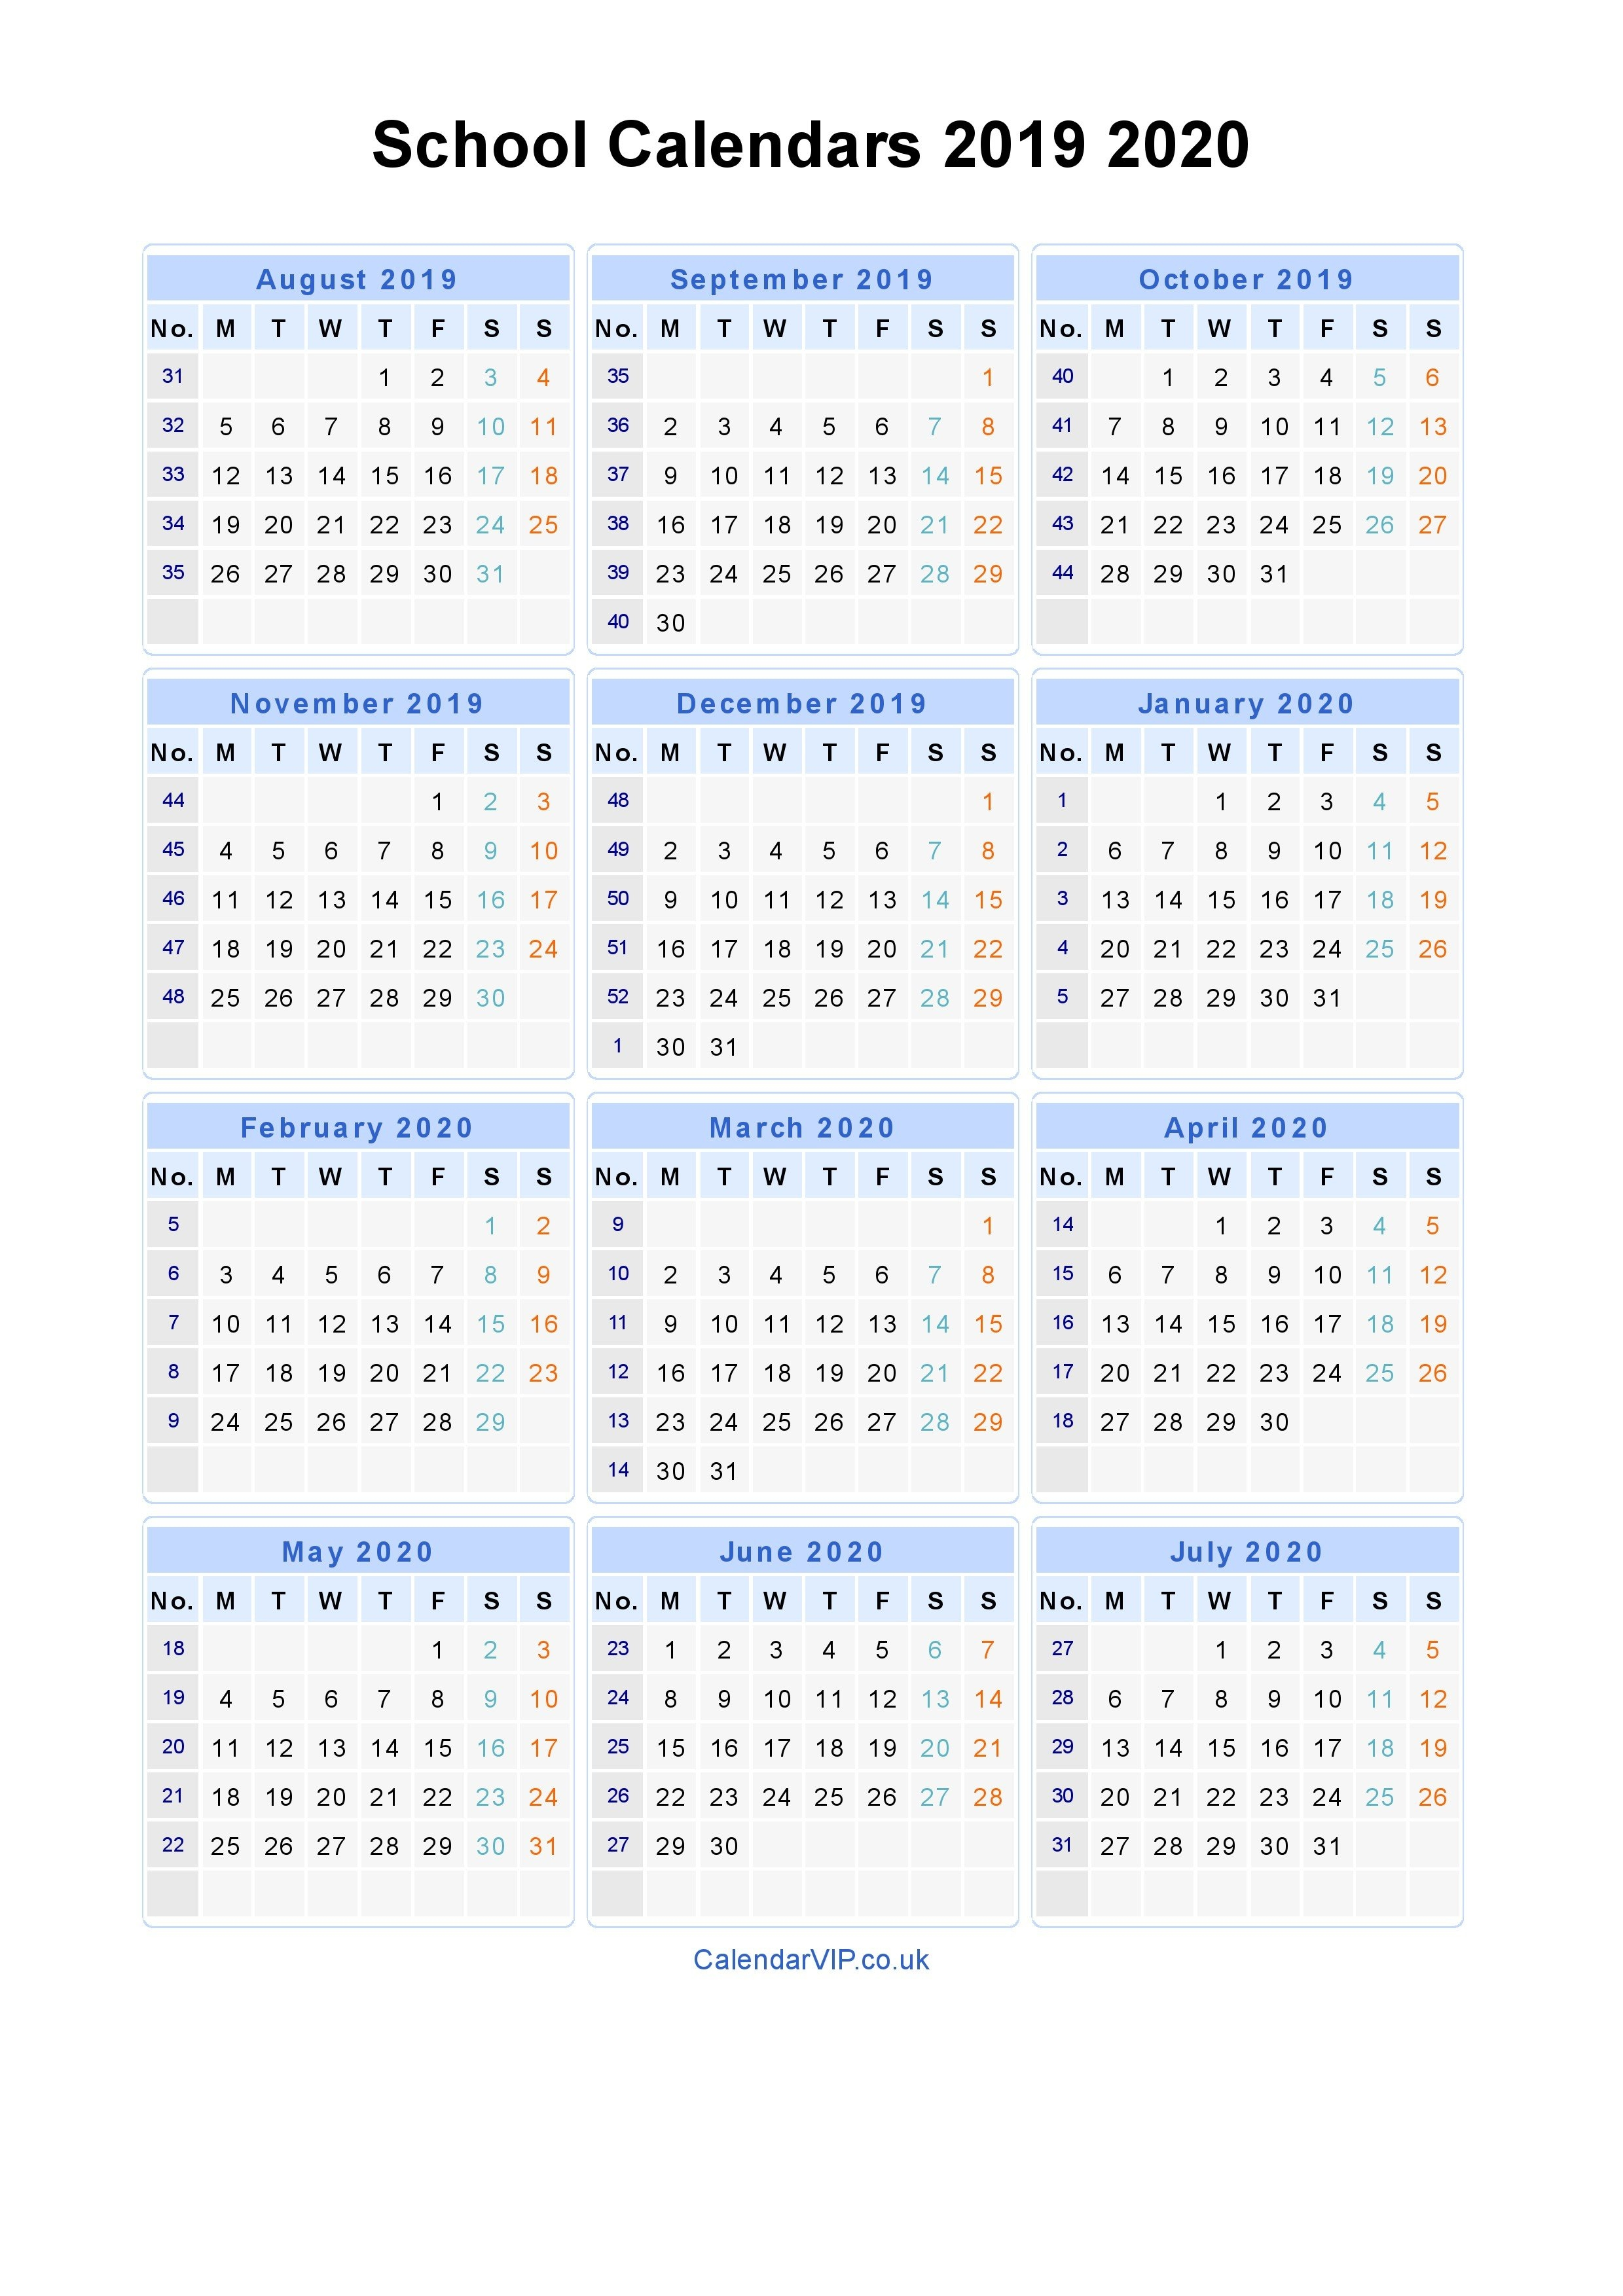 School Calendars 2019 2020 - Calendar From August 2019 To July 2020 Calendar 2019 To 2020